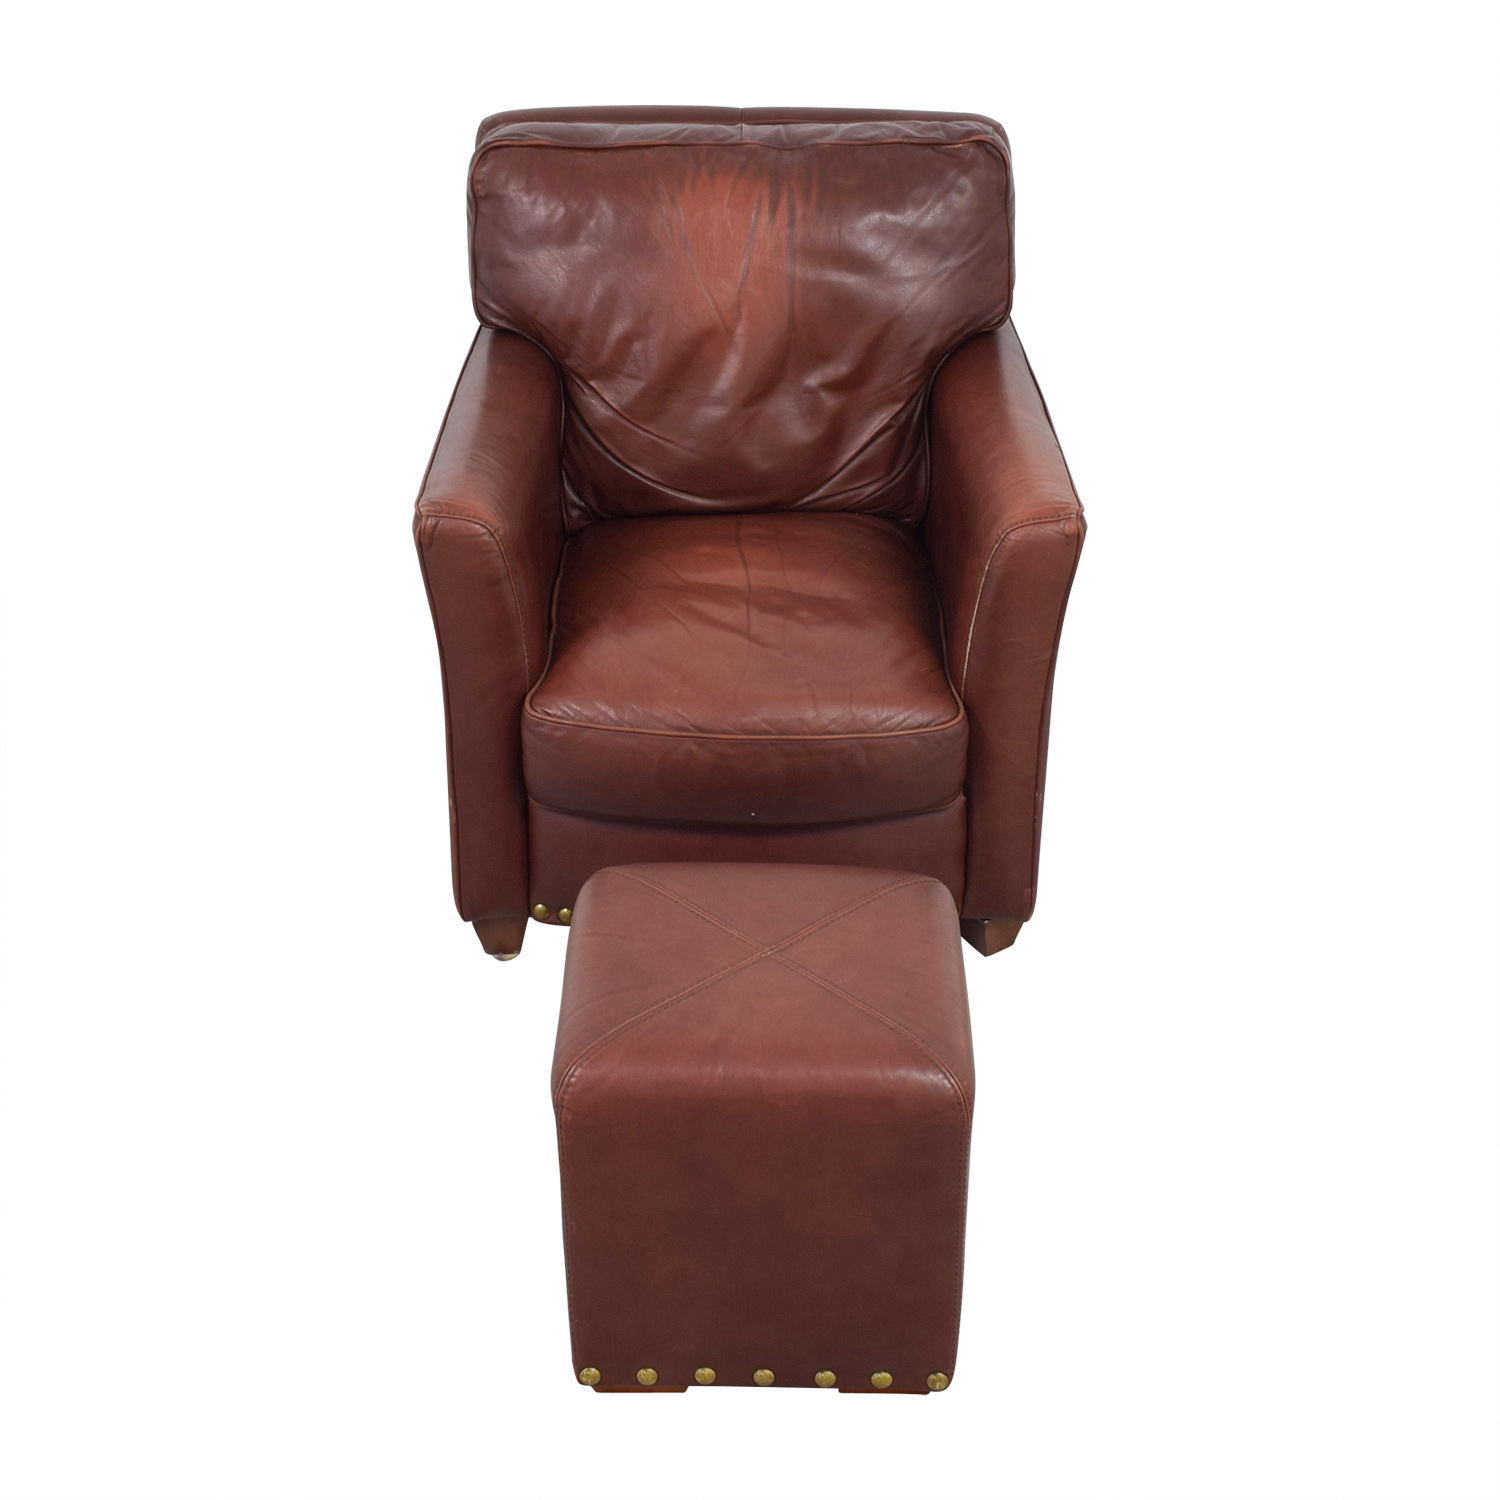 Brown Leather Chair and Ottoman dimensions